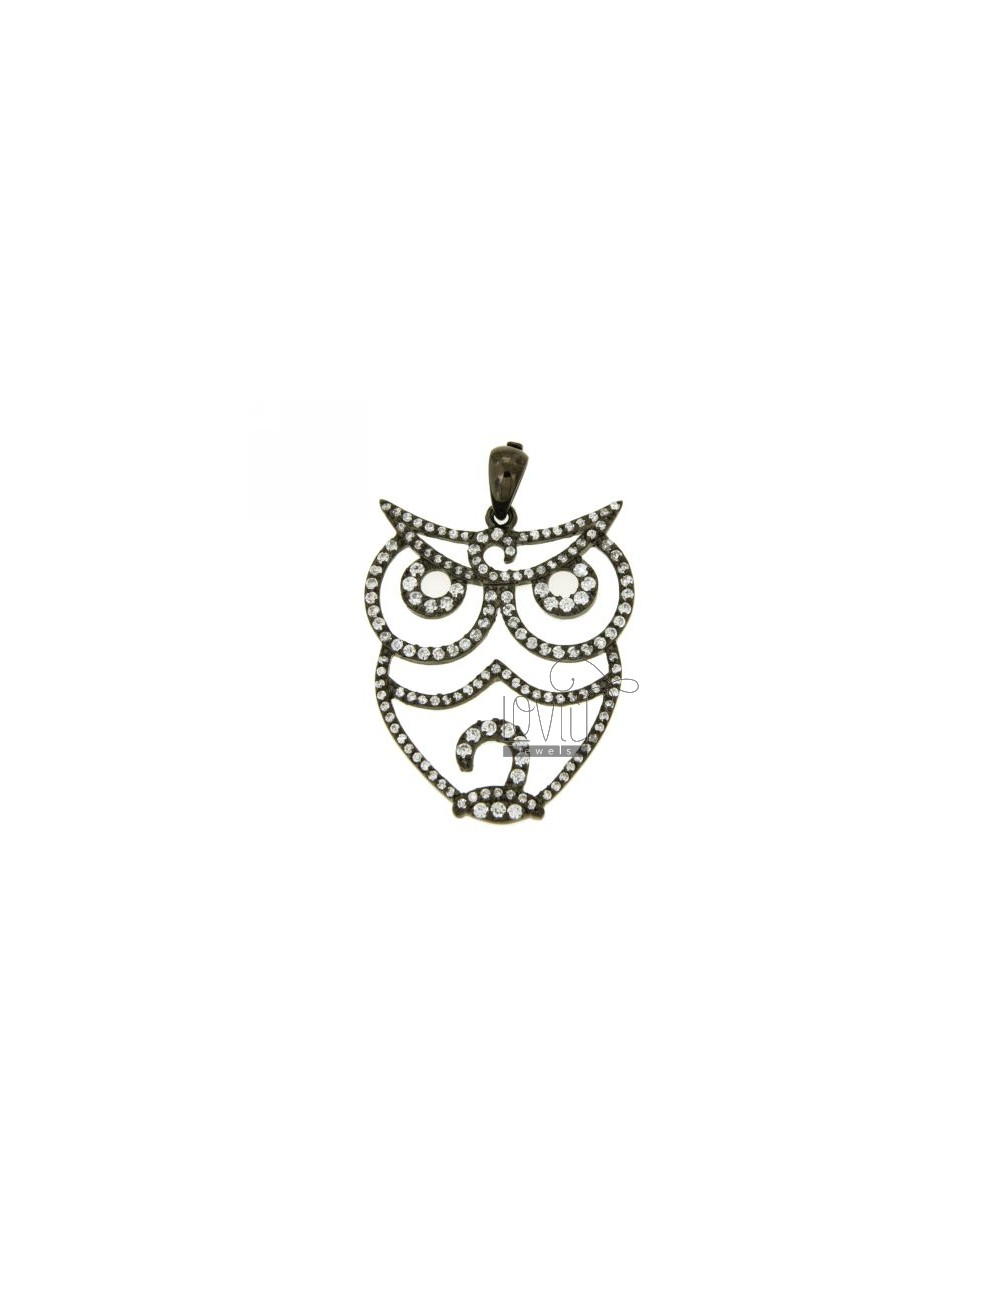 OWL PENDANT 32x28 MM IN AG PLATED RUTENIO TIT 925 ‰ AND ZIRCONIA